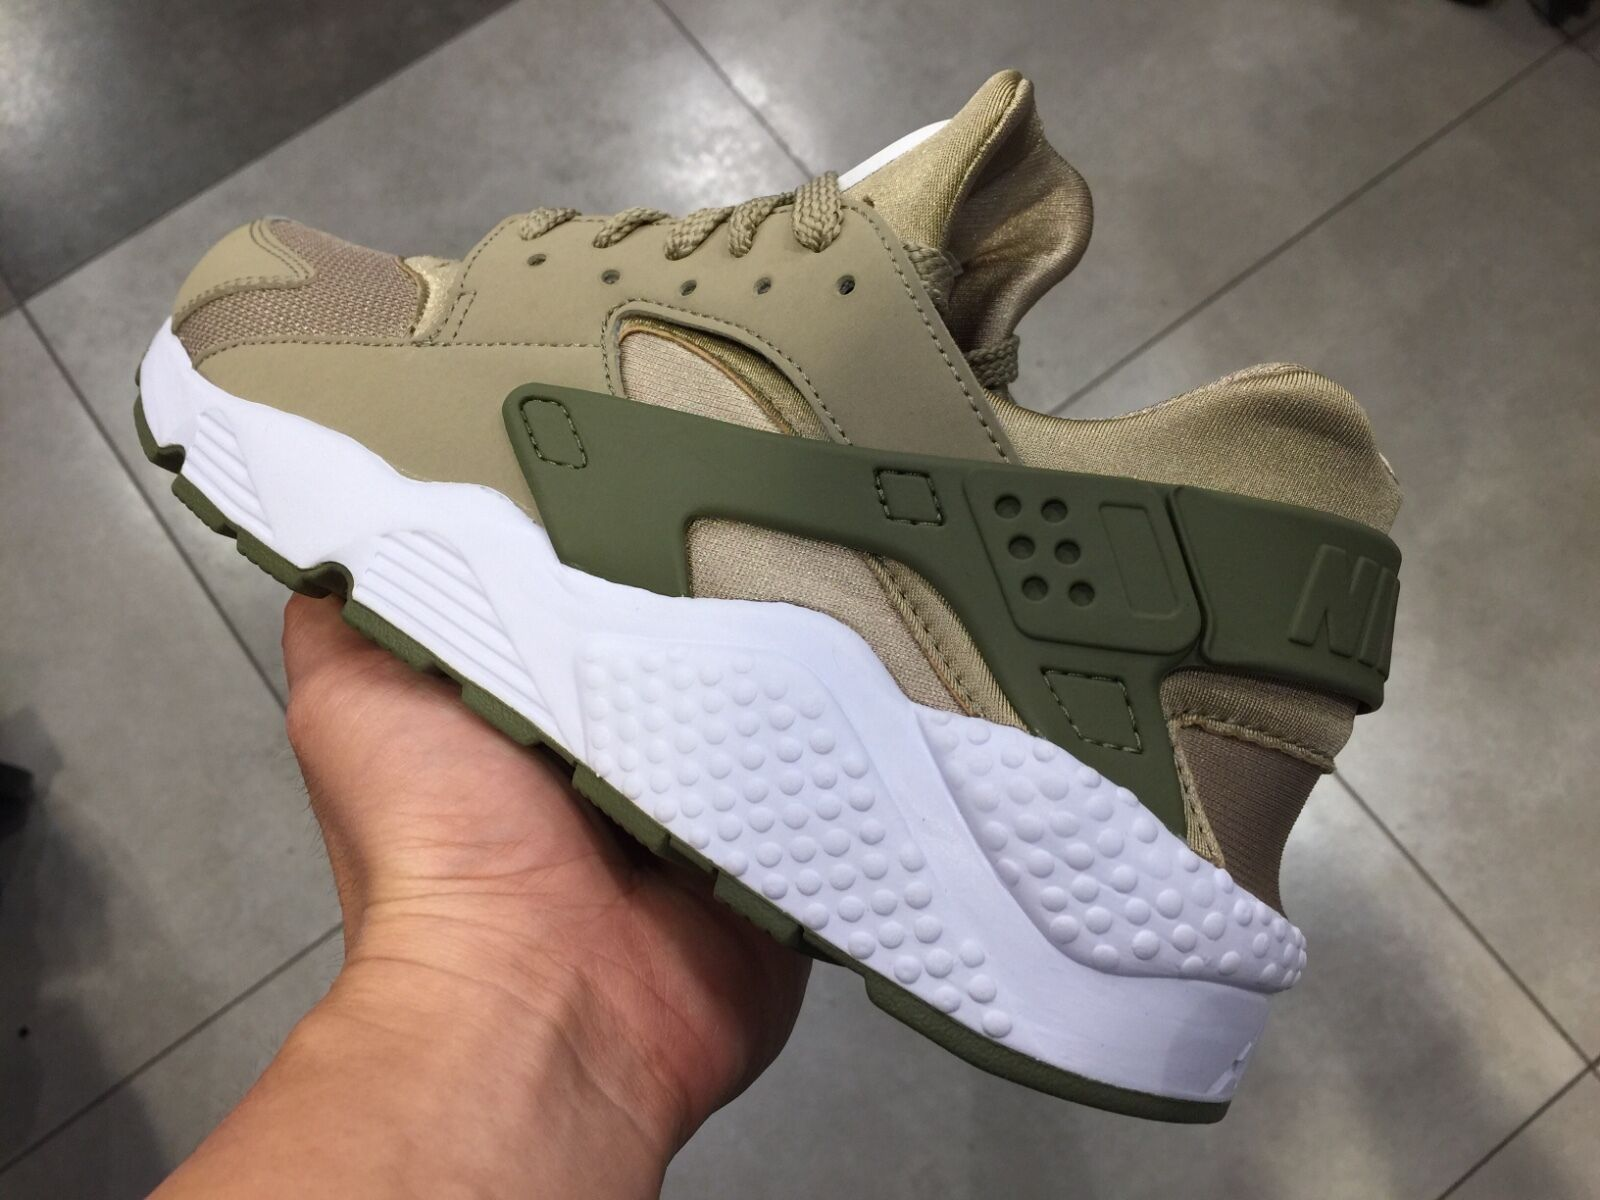 Nike Air Huarache Low gold olive green wolf All white Rainbow Sunset black